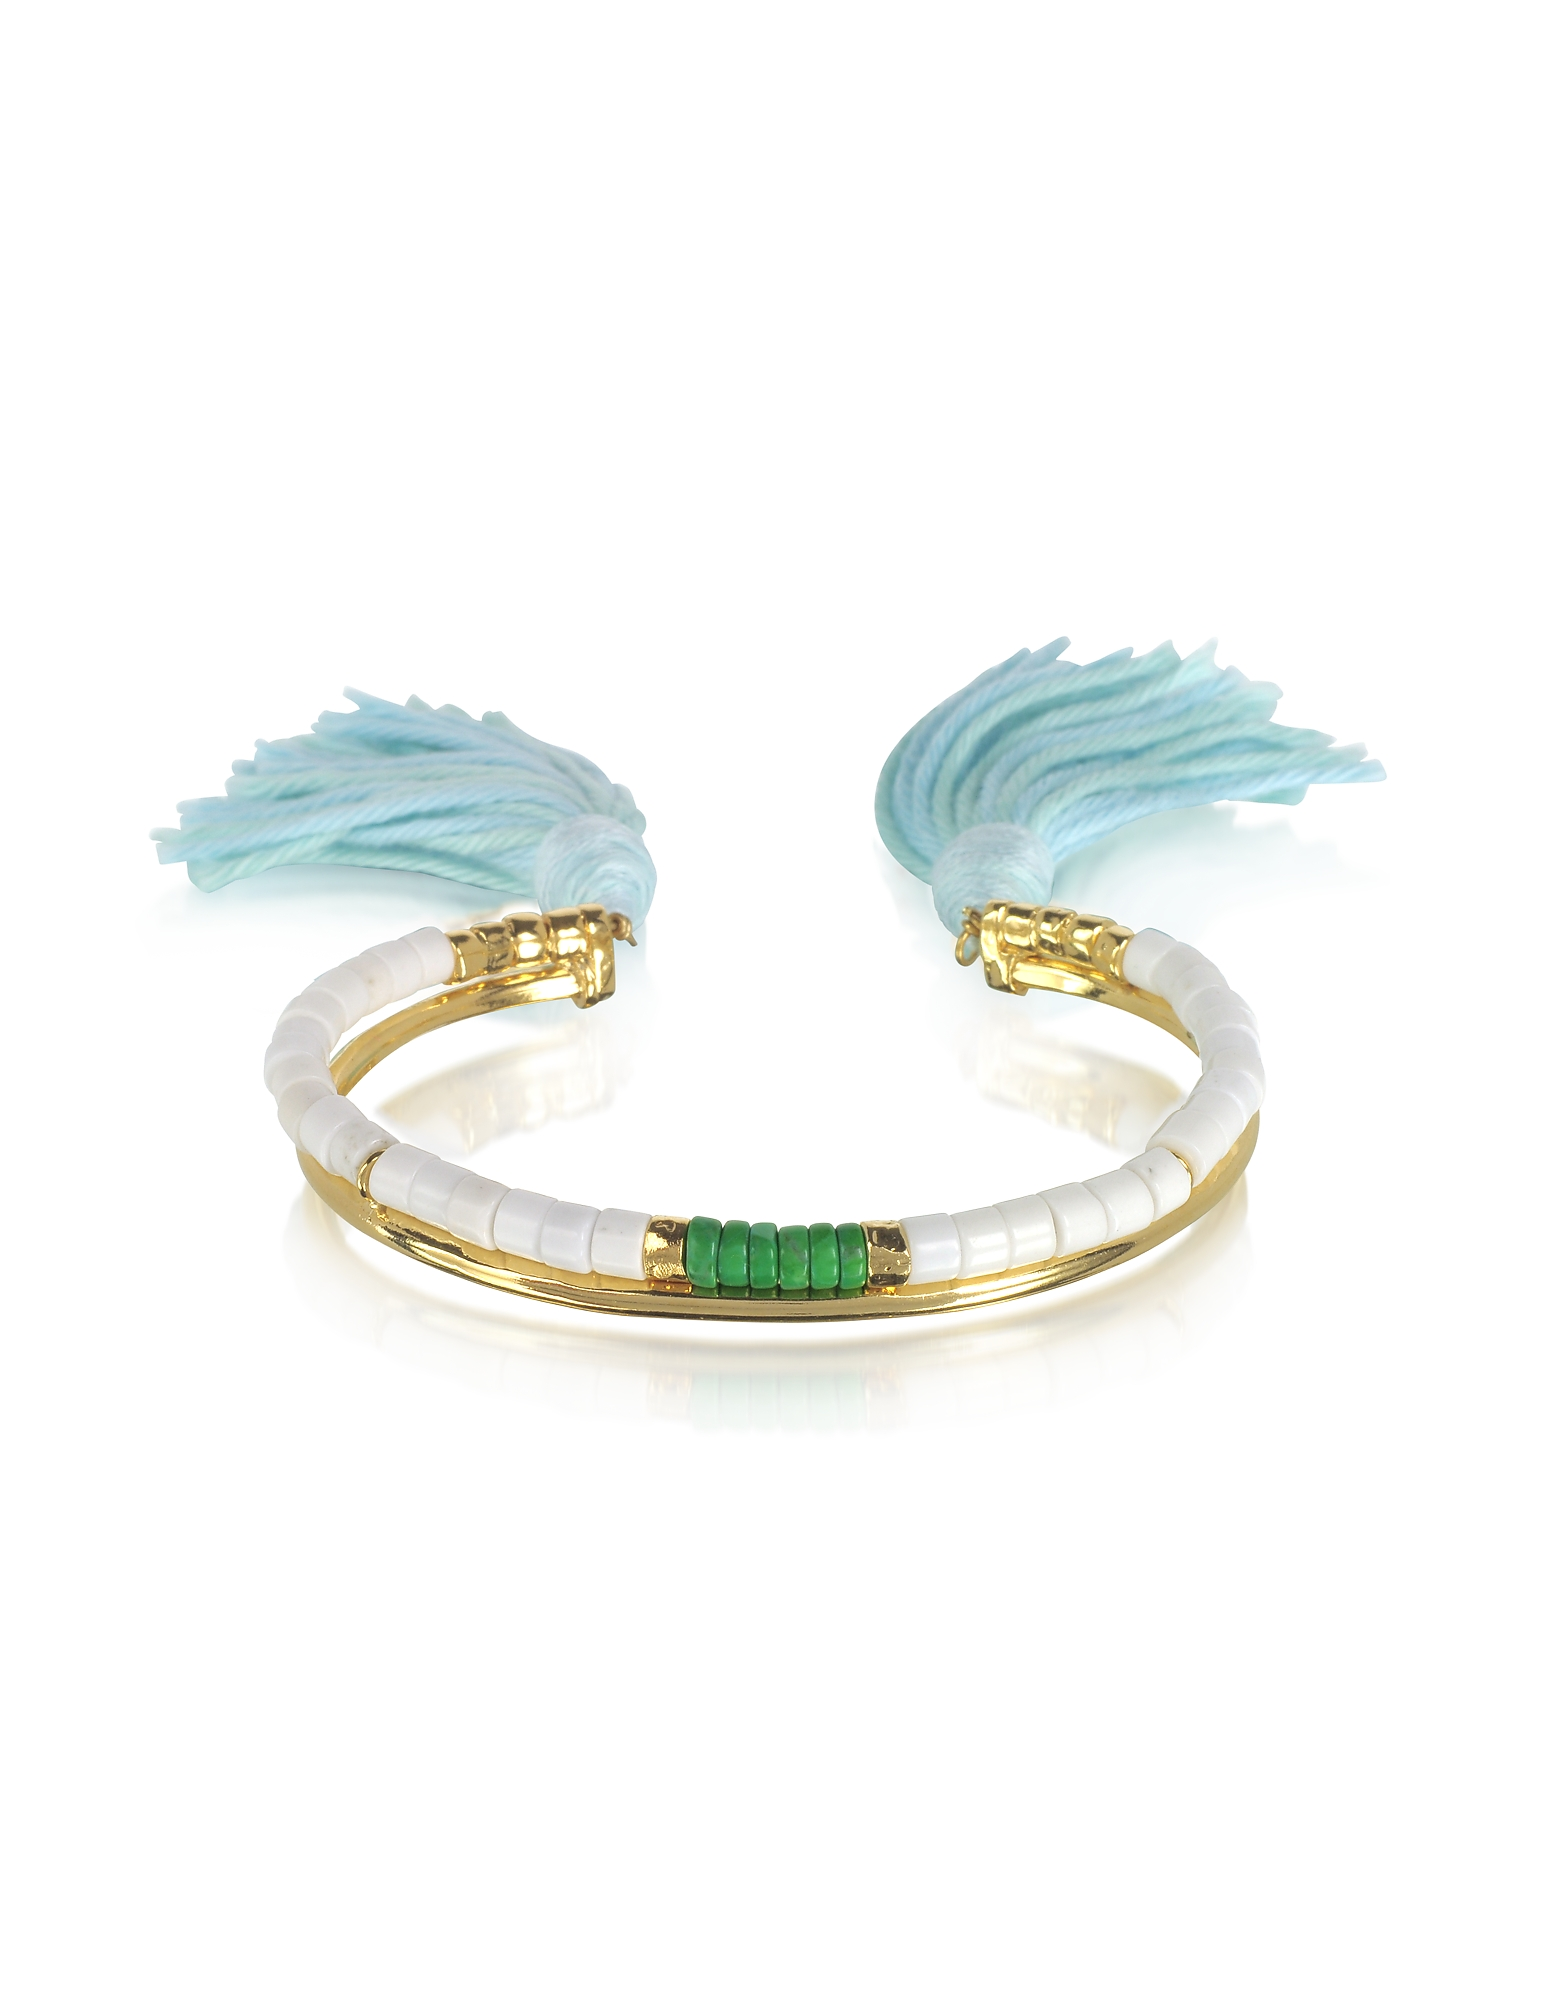 Image of Aurelie Bidermann Designer Bracelets, 18K Gold-Plated & White Bamboo and Green Jaspe Beads Sioux Bracelet w/Light Blue Cotton Tassels